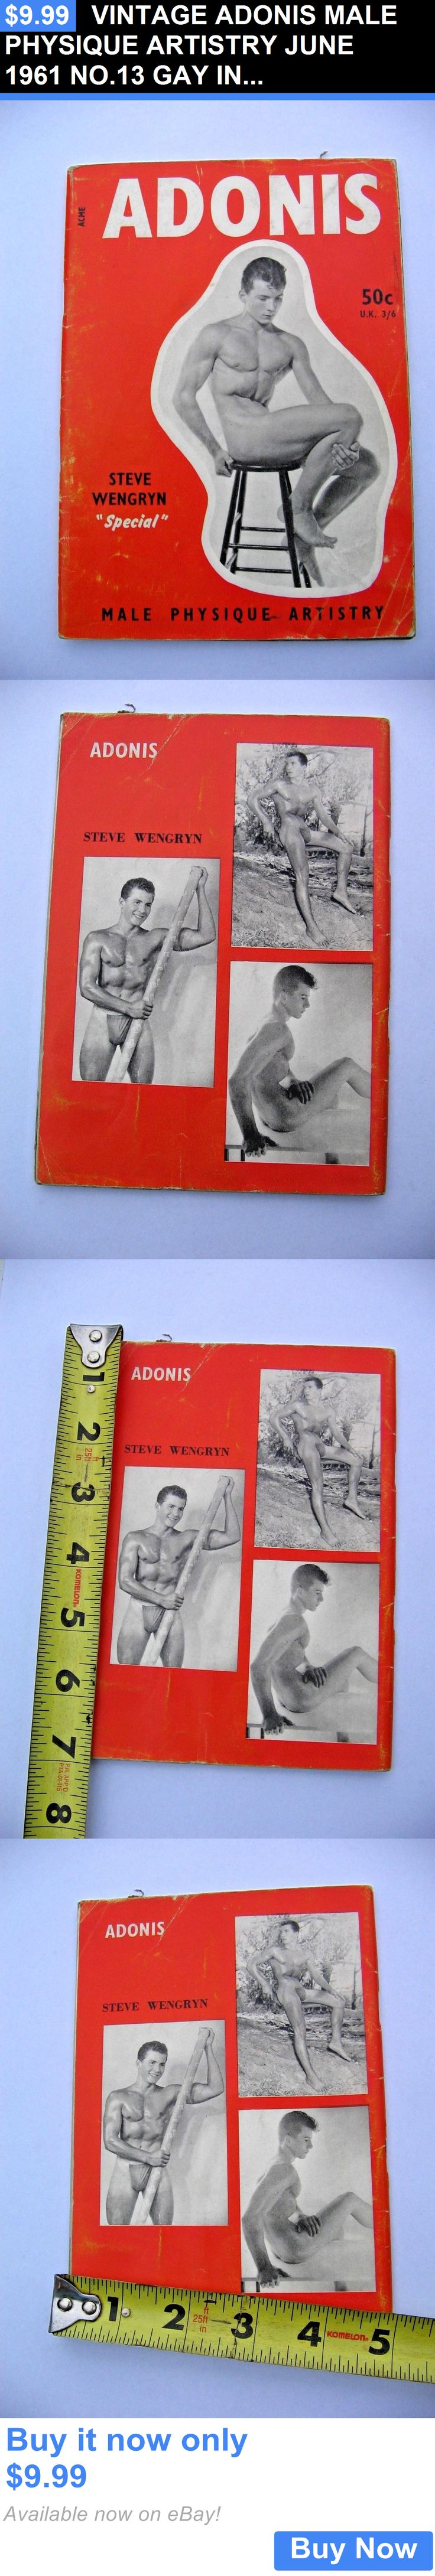 Magazines: Vintage Adonis Male Physique Artistry June 1961 No.13 Gay Interest Magazine Find BUY IT NOW ONLY: $9.99